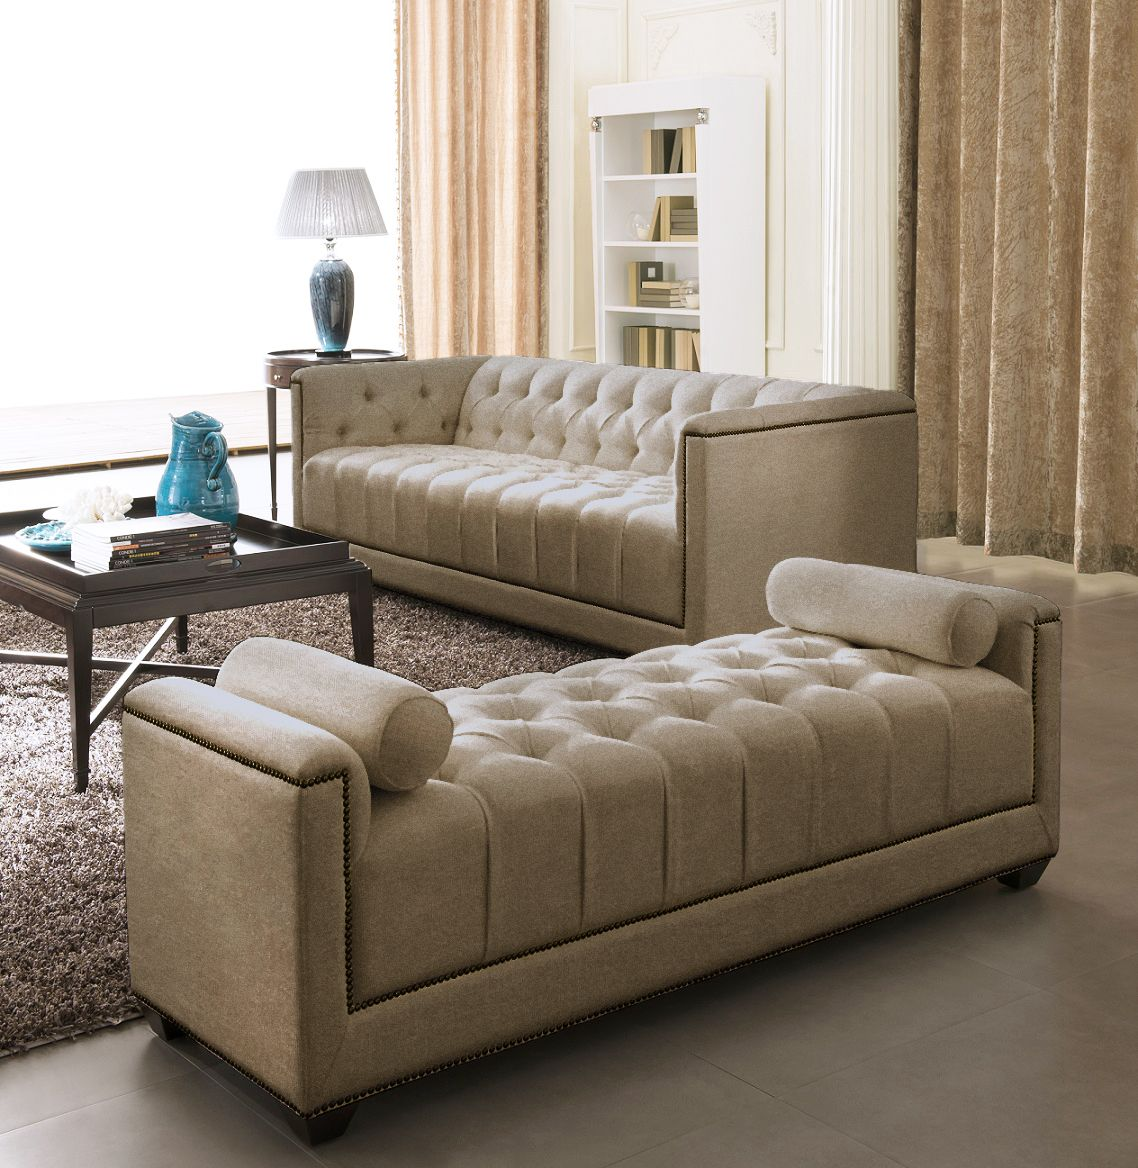 modern sofa set designs for living room | Vijay | Pinterest | Sofa ...